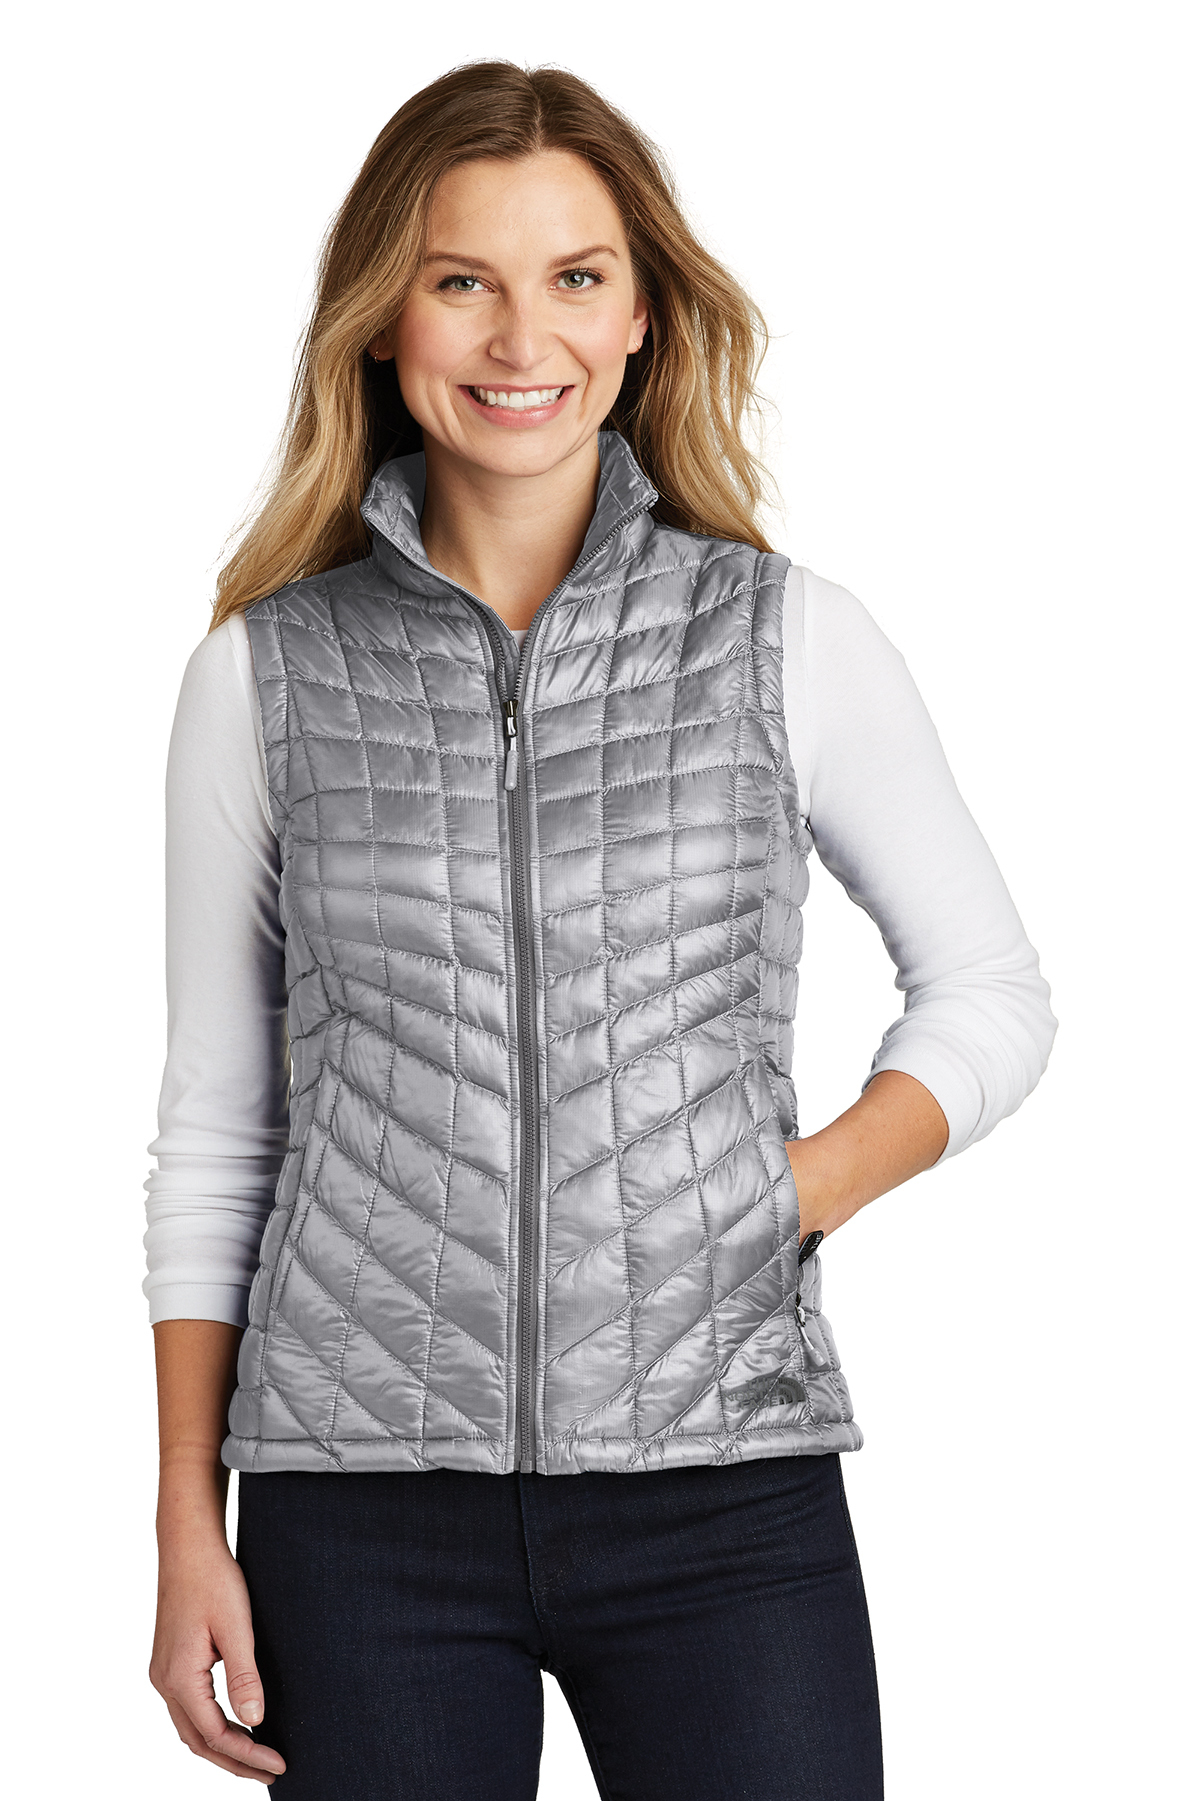 6b203cd52441 ... Ridgeline Soft Shell Vest. Starting at  85.00. Delete. The North Face SUP   174   SUP   Ladies ThermoBall